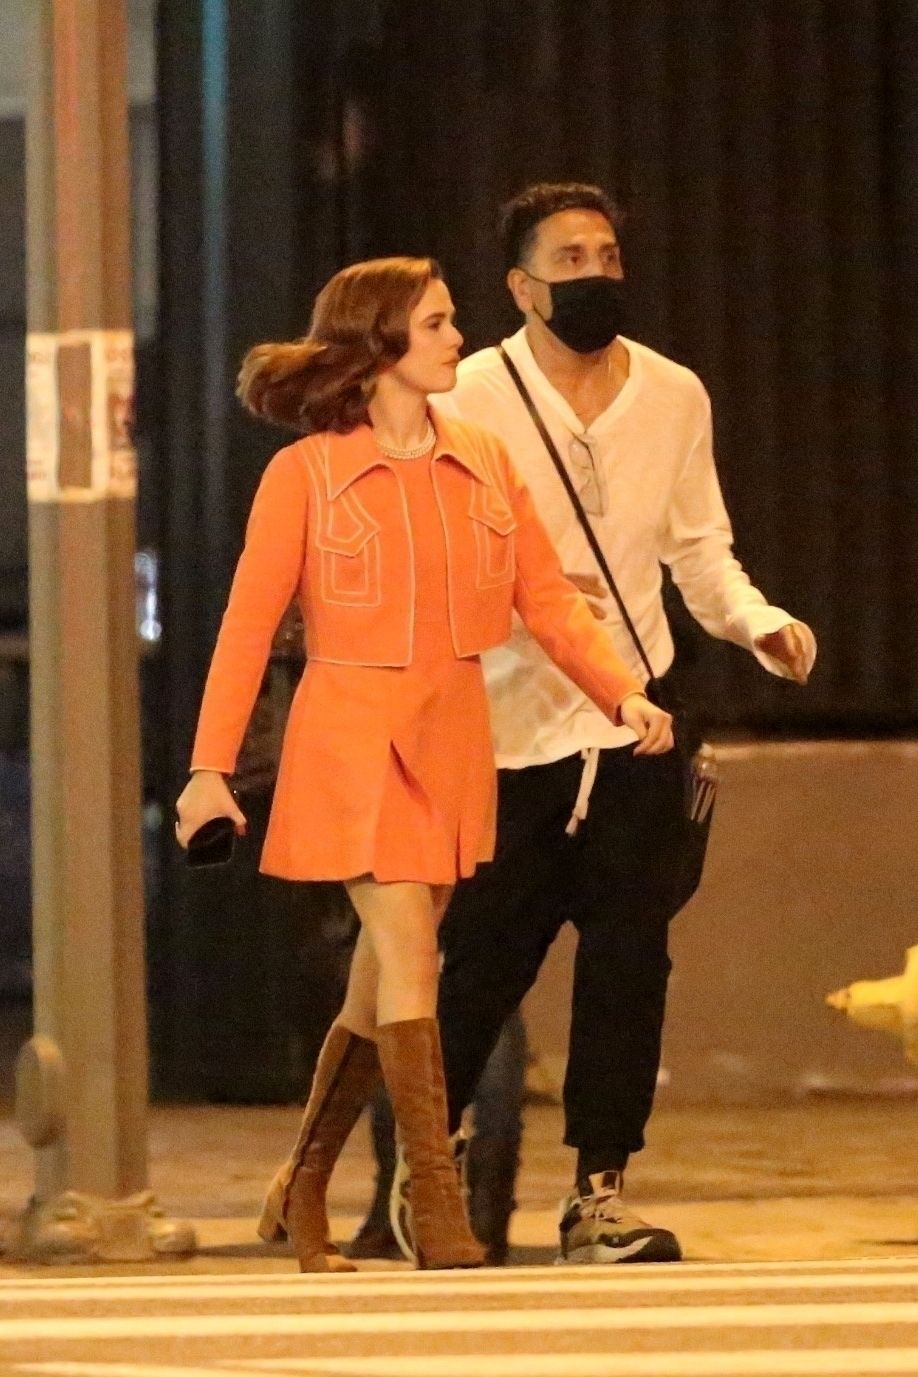 Zoey Deutch 2020 : Zoey Deutch – Makes a cameo for Justin Biebers latest music video in Los Angeles-04